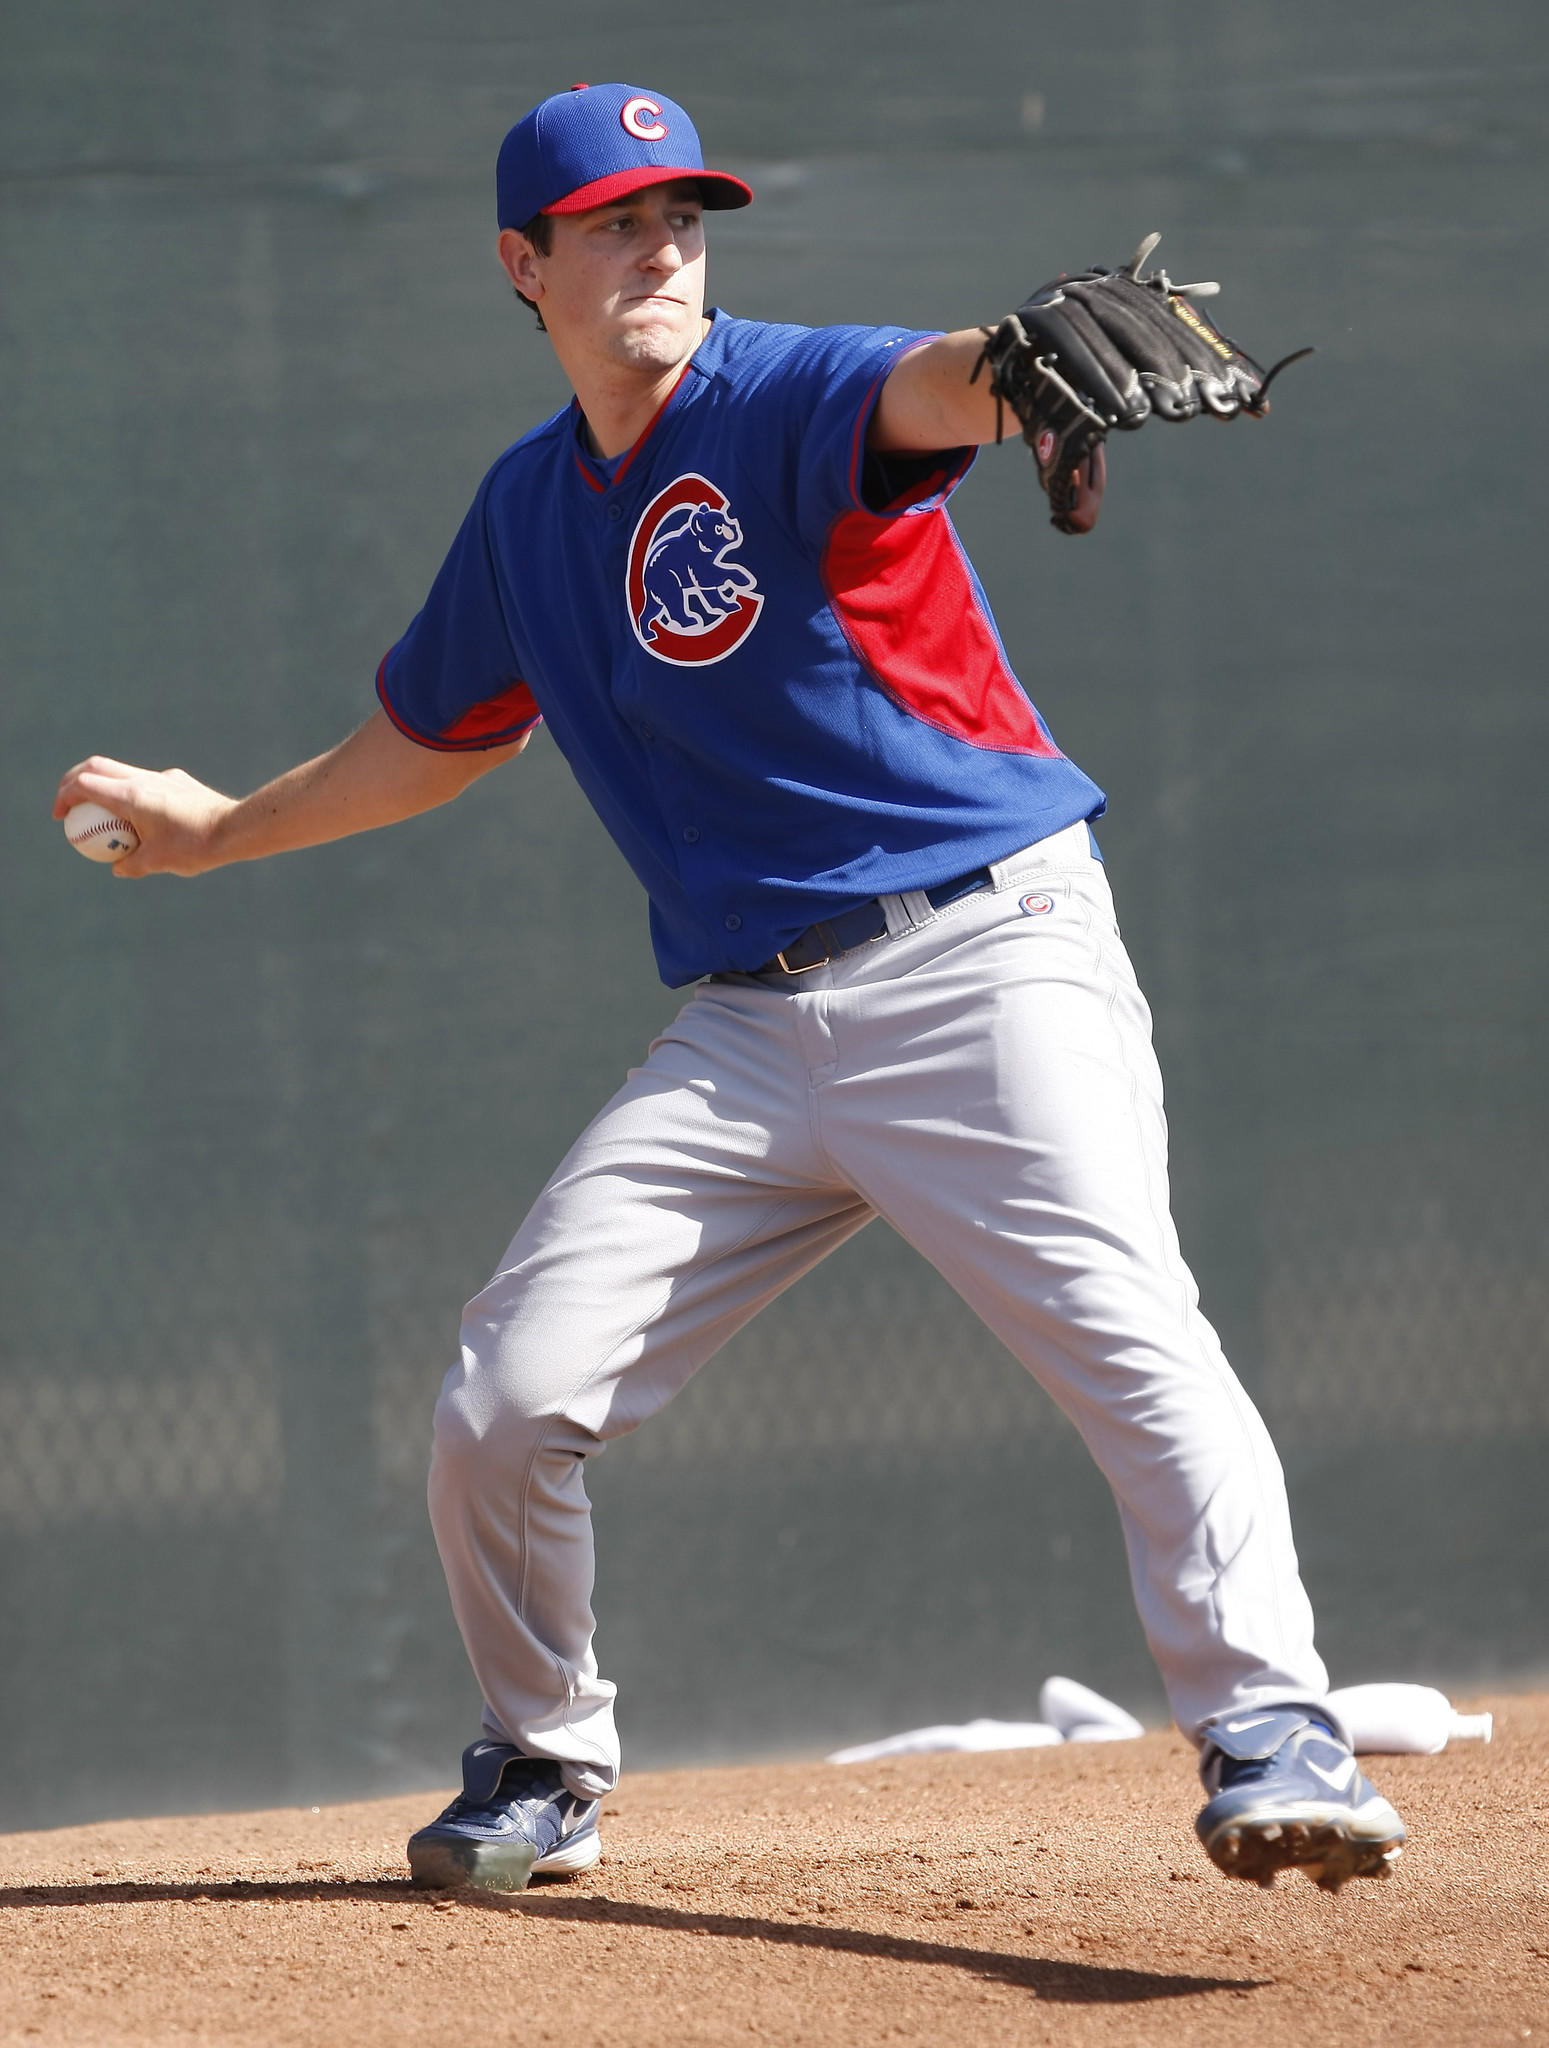 Chicago Cubs pitcher Kyle Hendricks (9) throws in the bullpen during camp at Chicago Cubs training facility at Mesa.